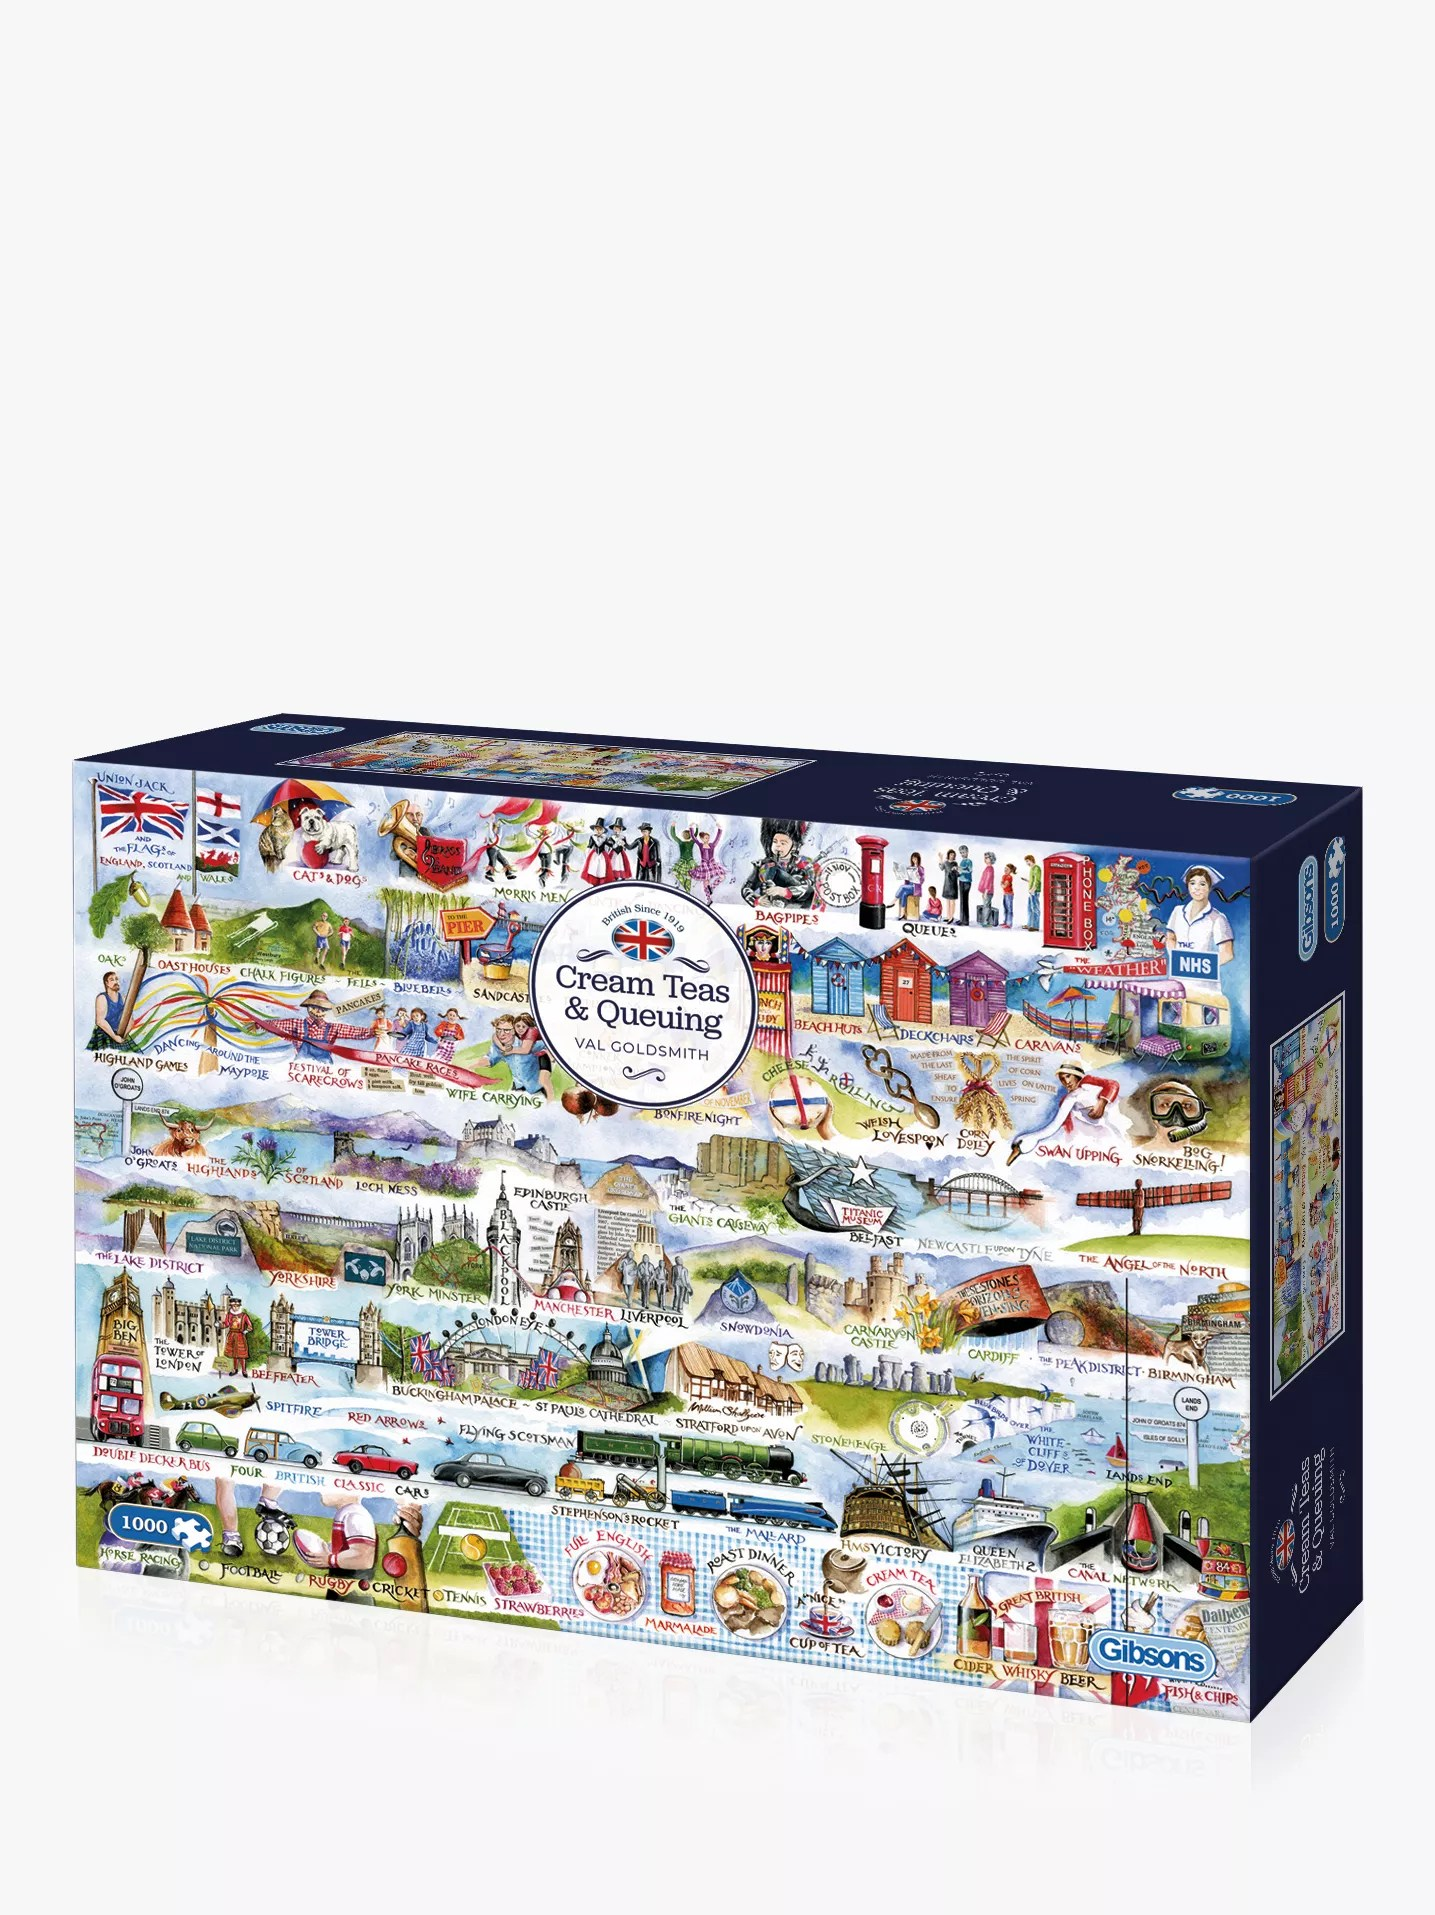 View All Games Puzzles John Lewis Partners